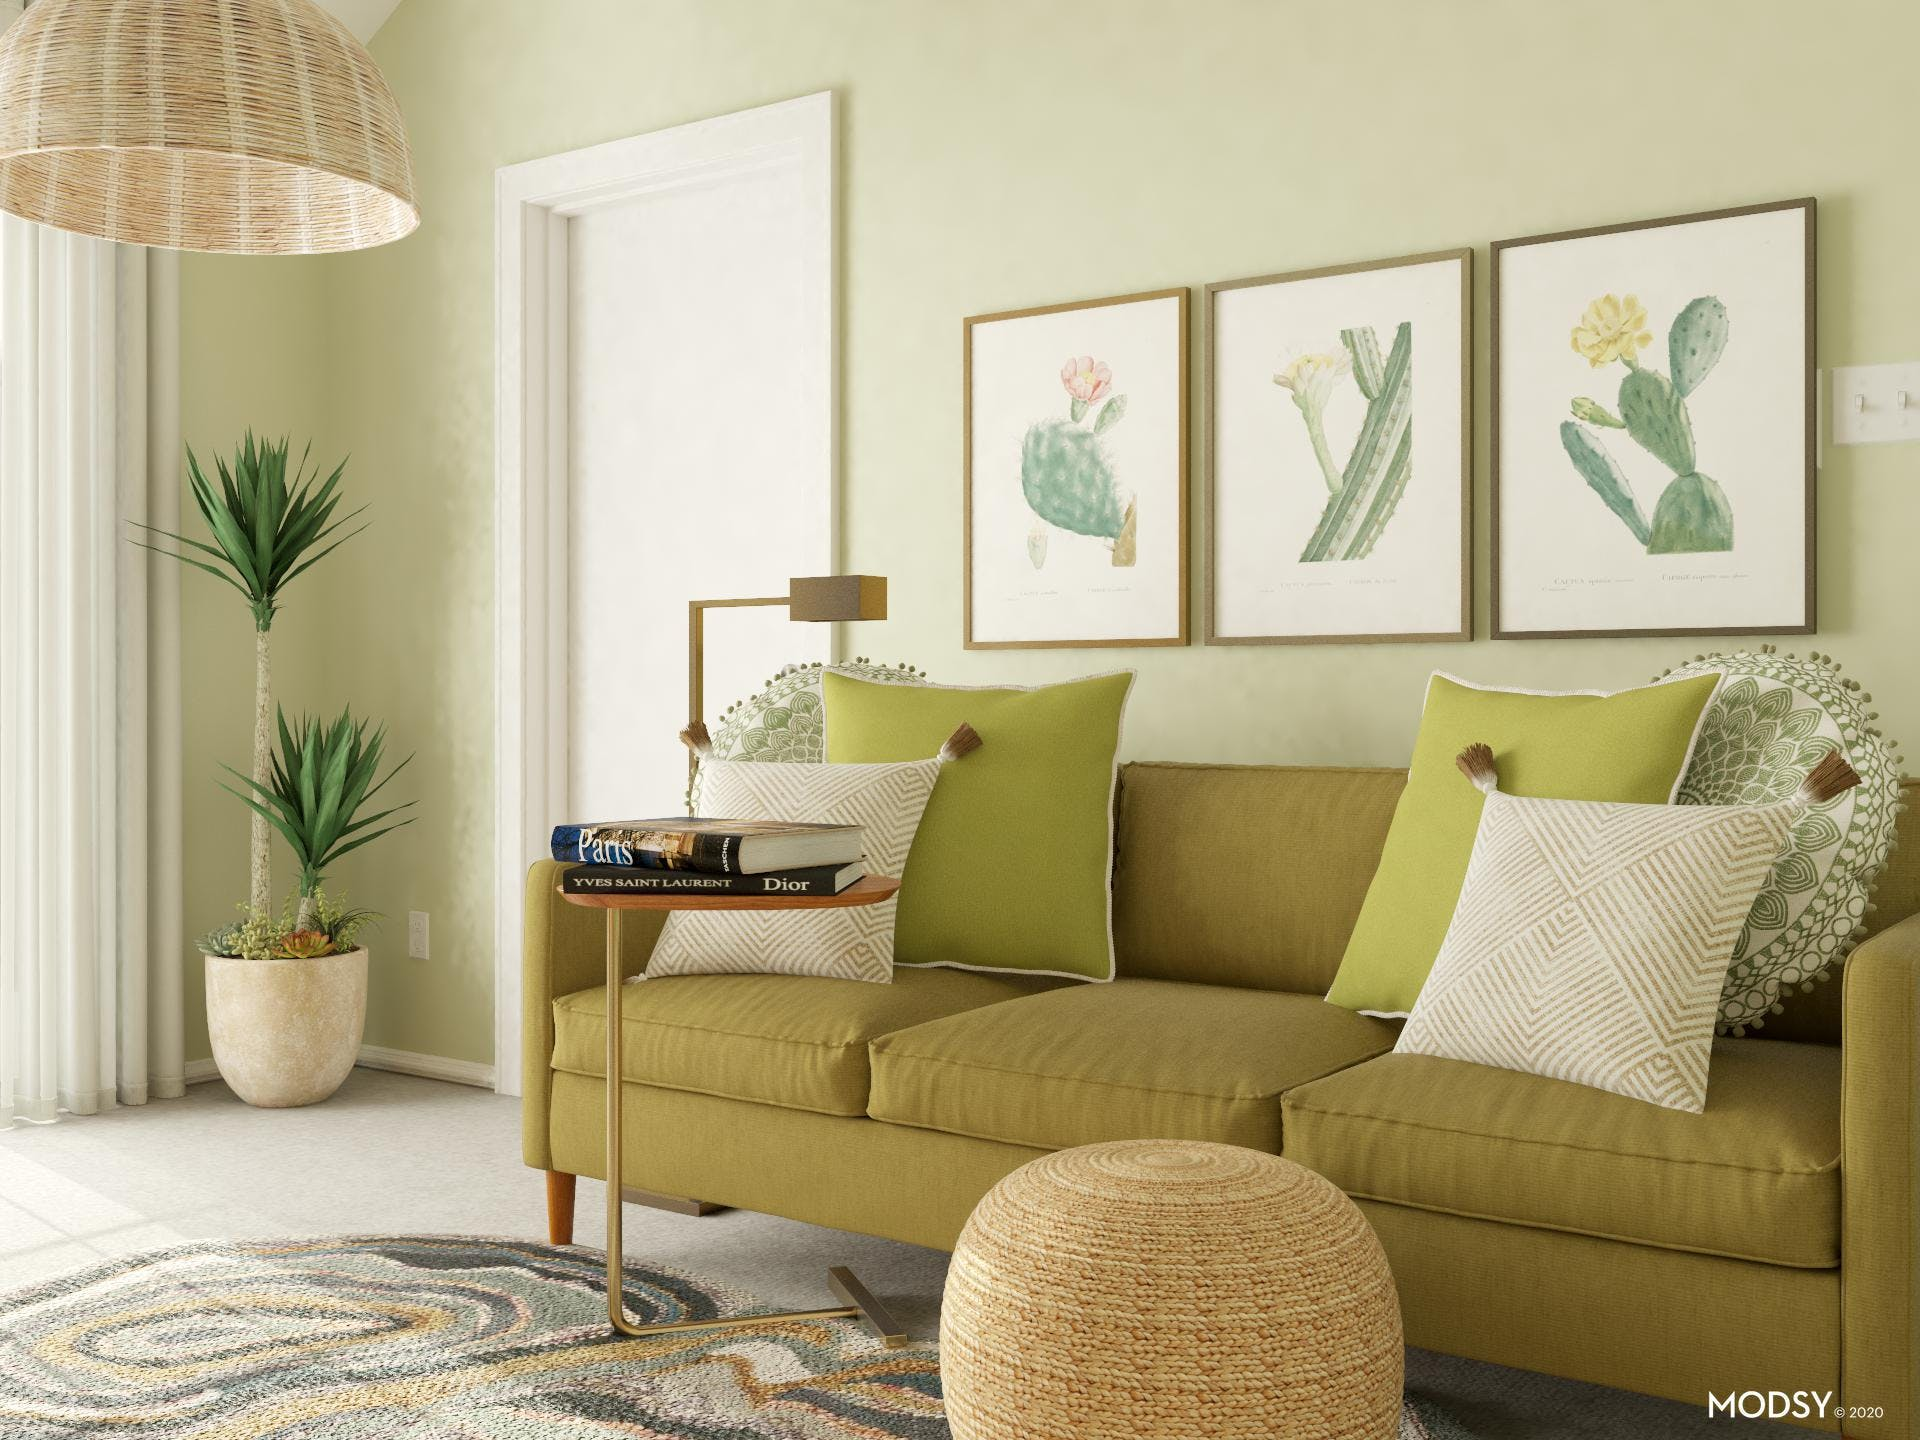 Cool Greens: Cool Mid-Century